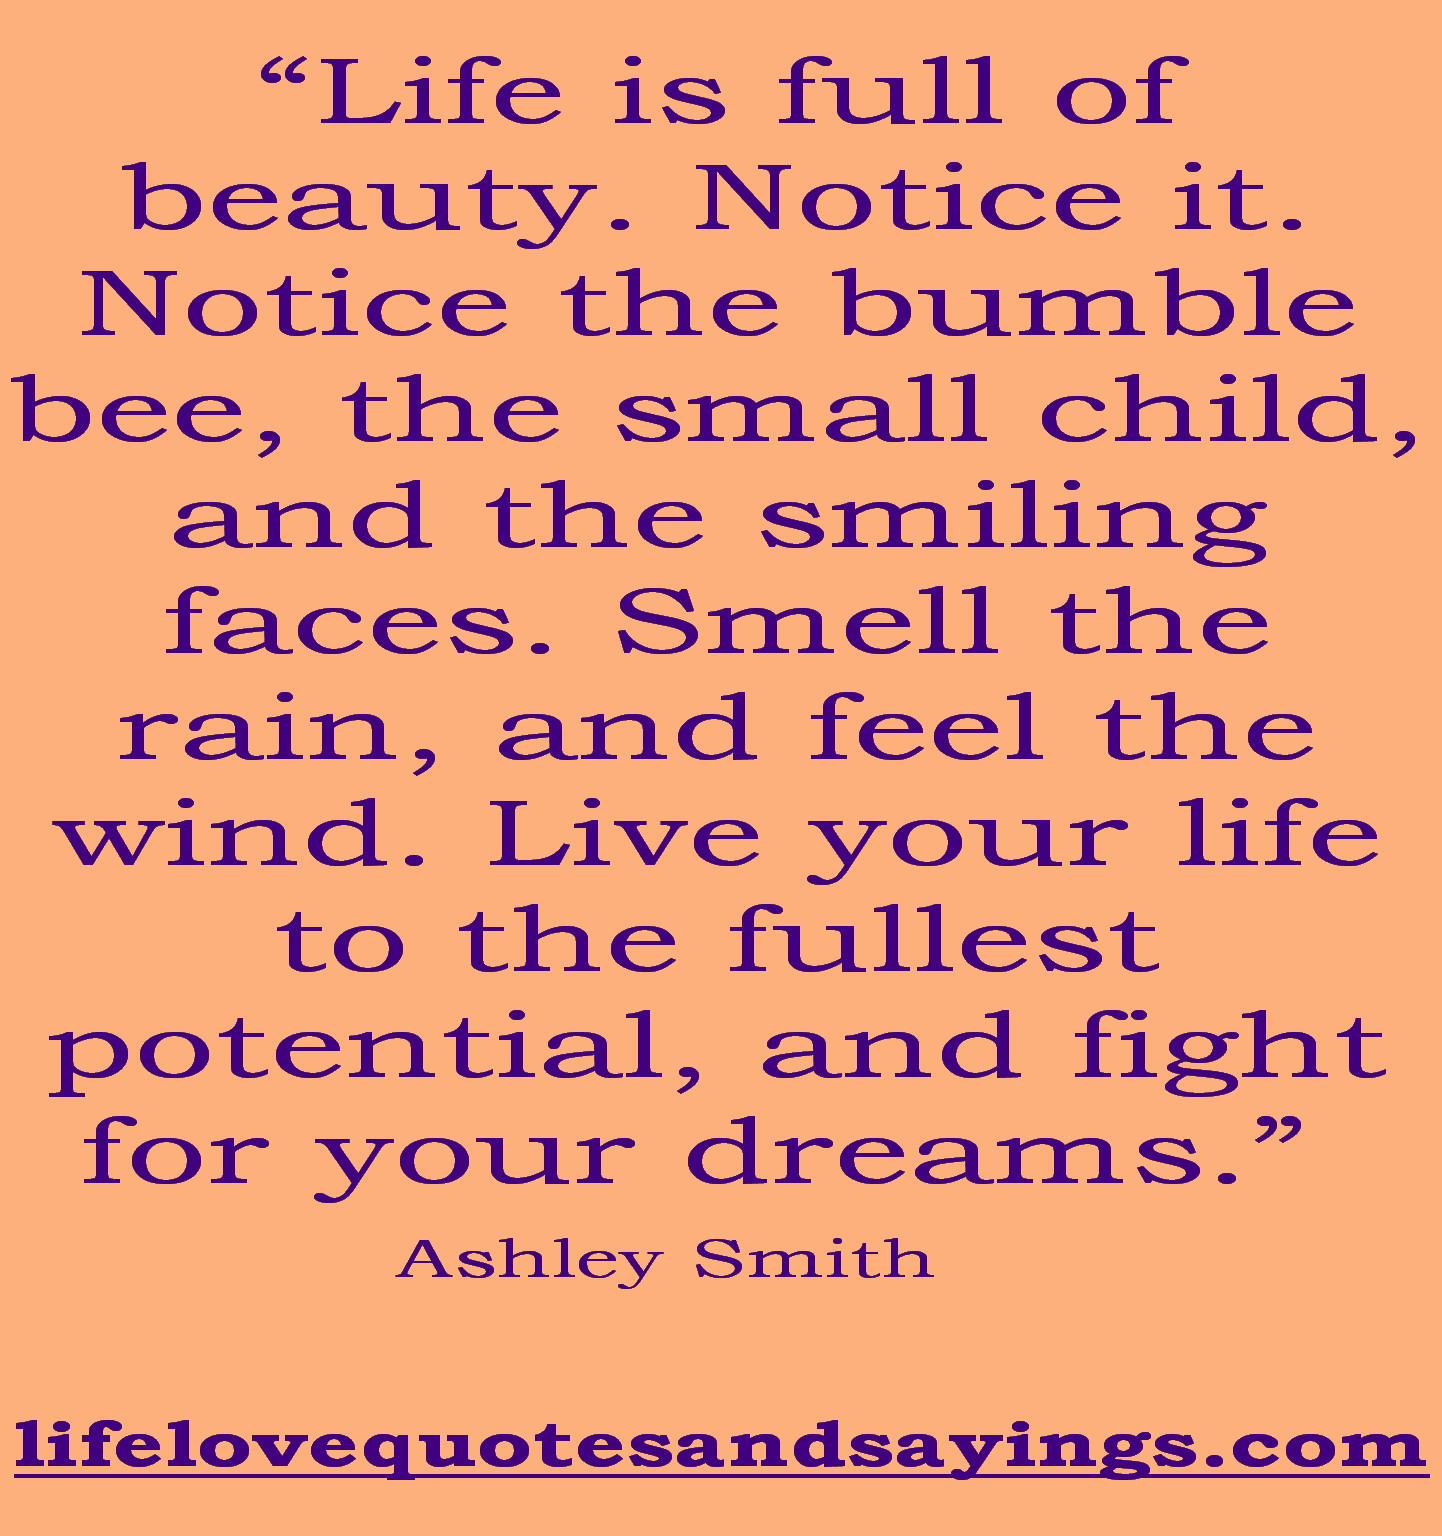 Quotes About Living Life Live Life To The Fullest Quotes